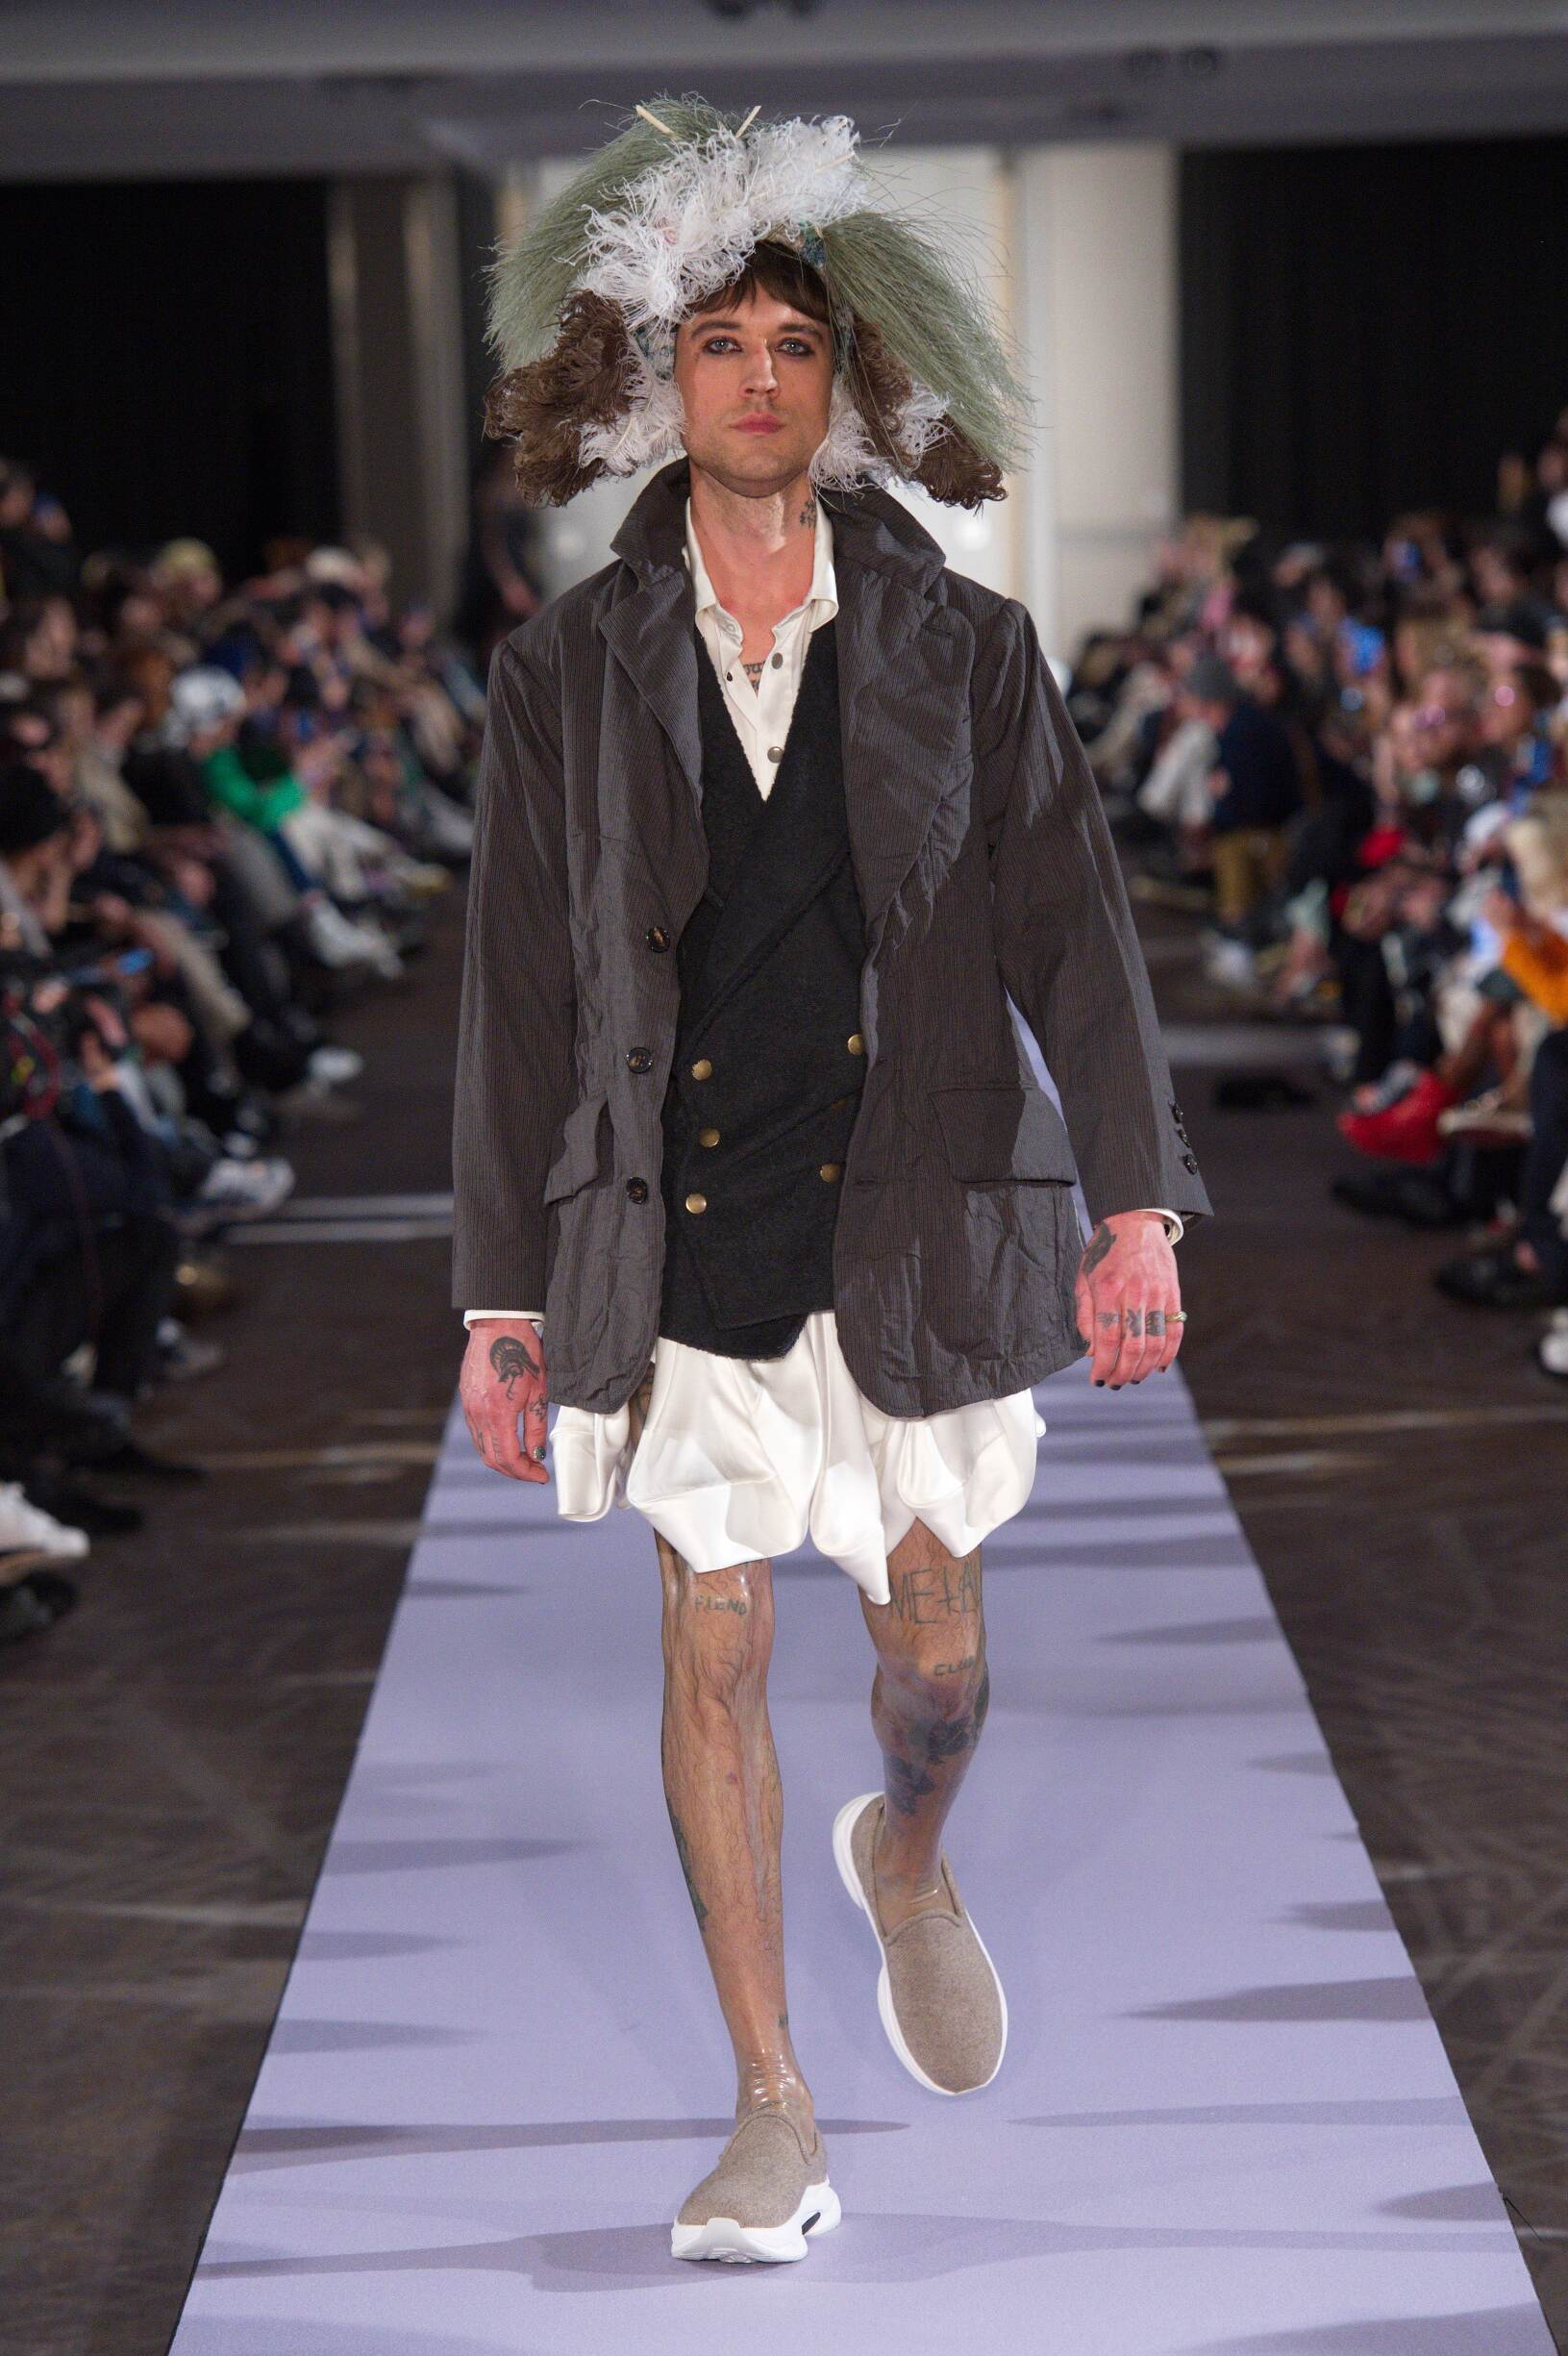 Andreas Kronthaler for Vivienne Westwood Paris Fashion Week Menswear 2019-20